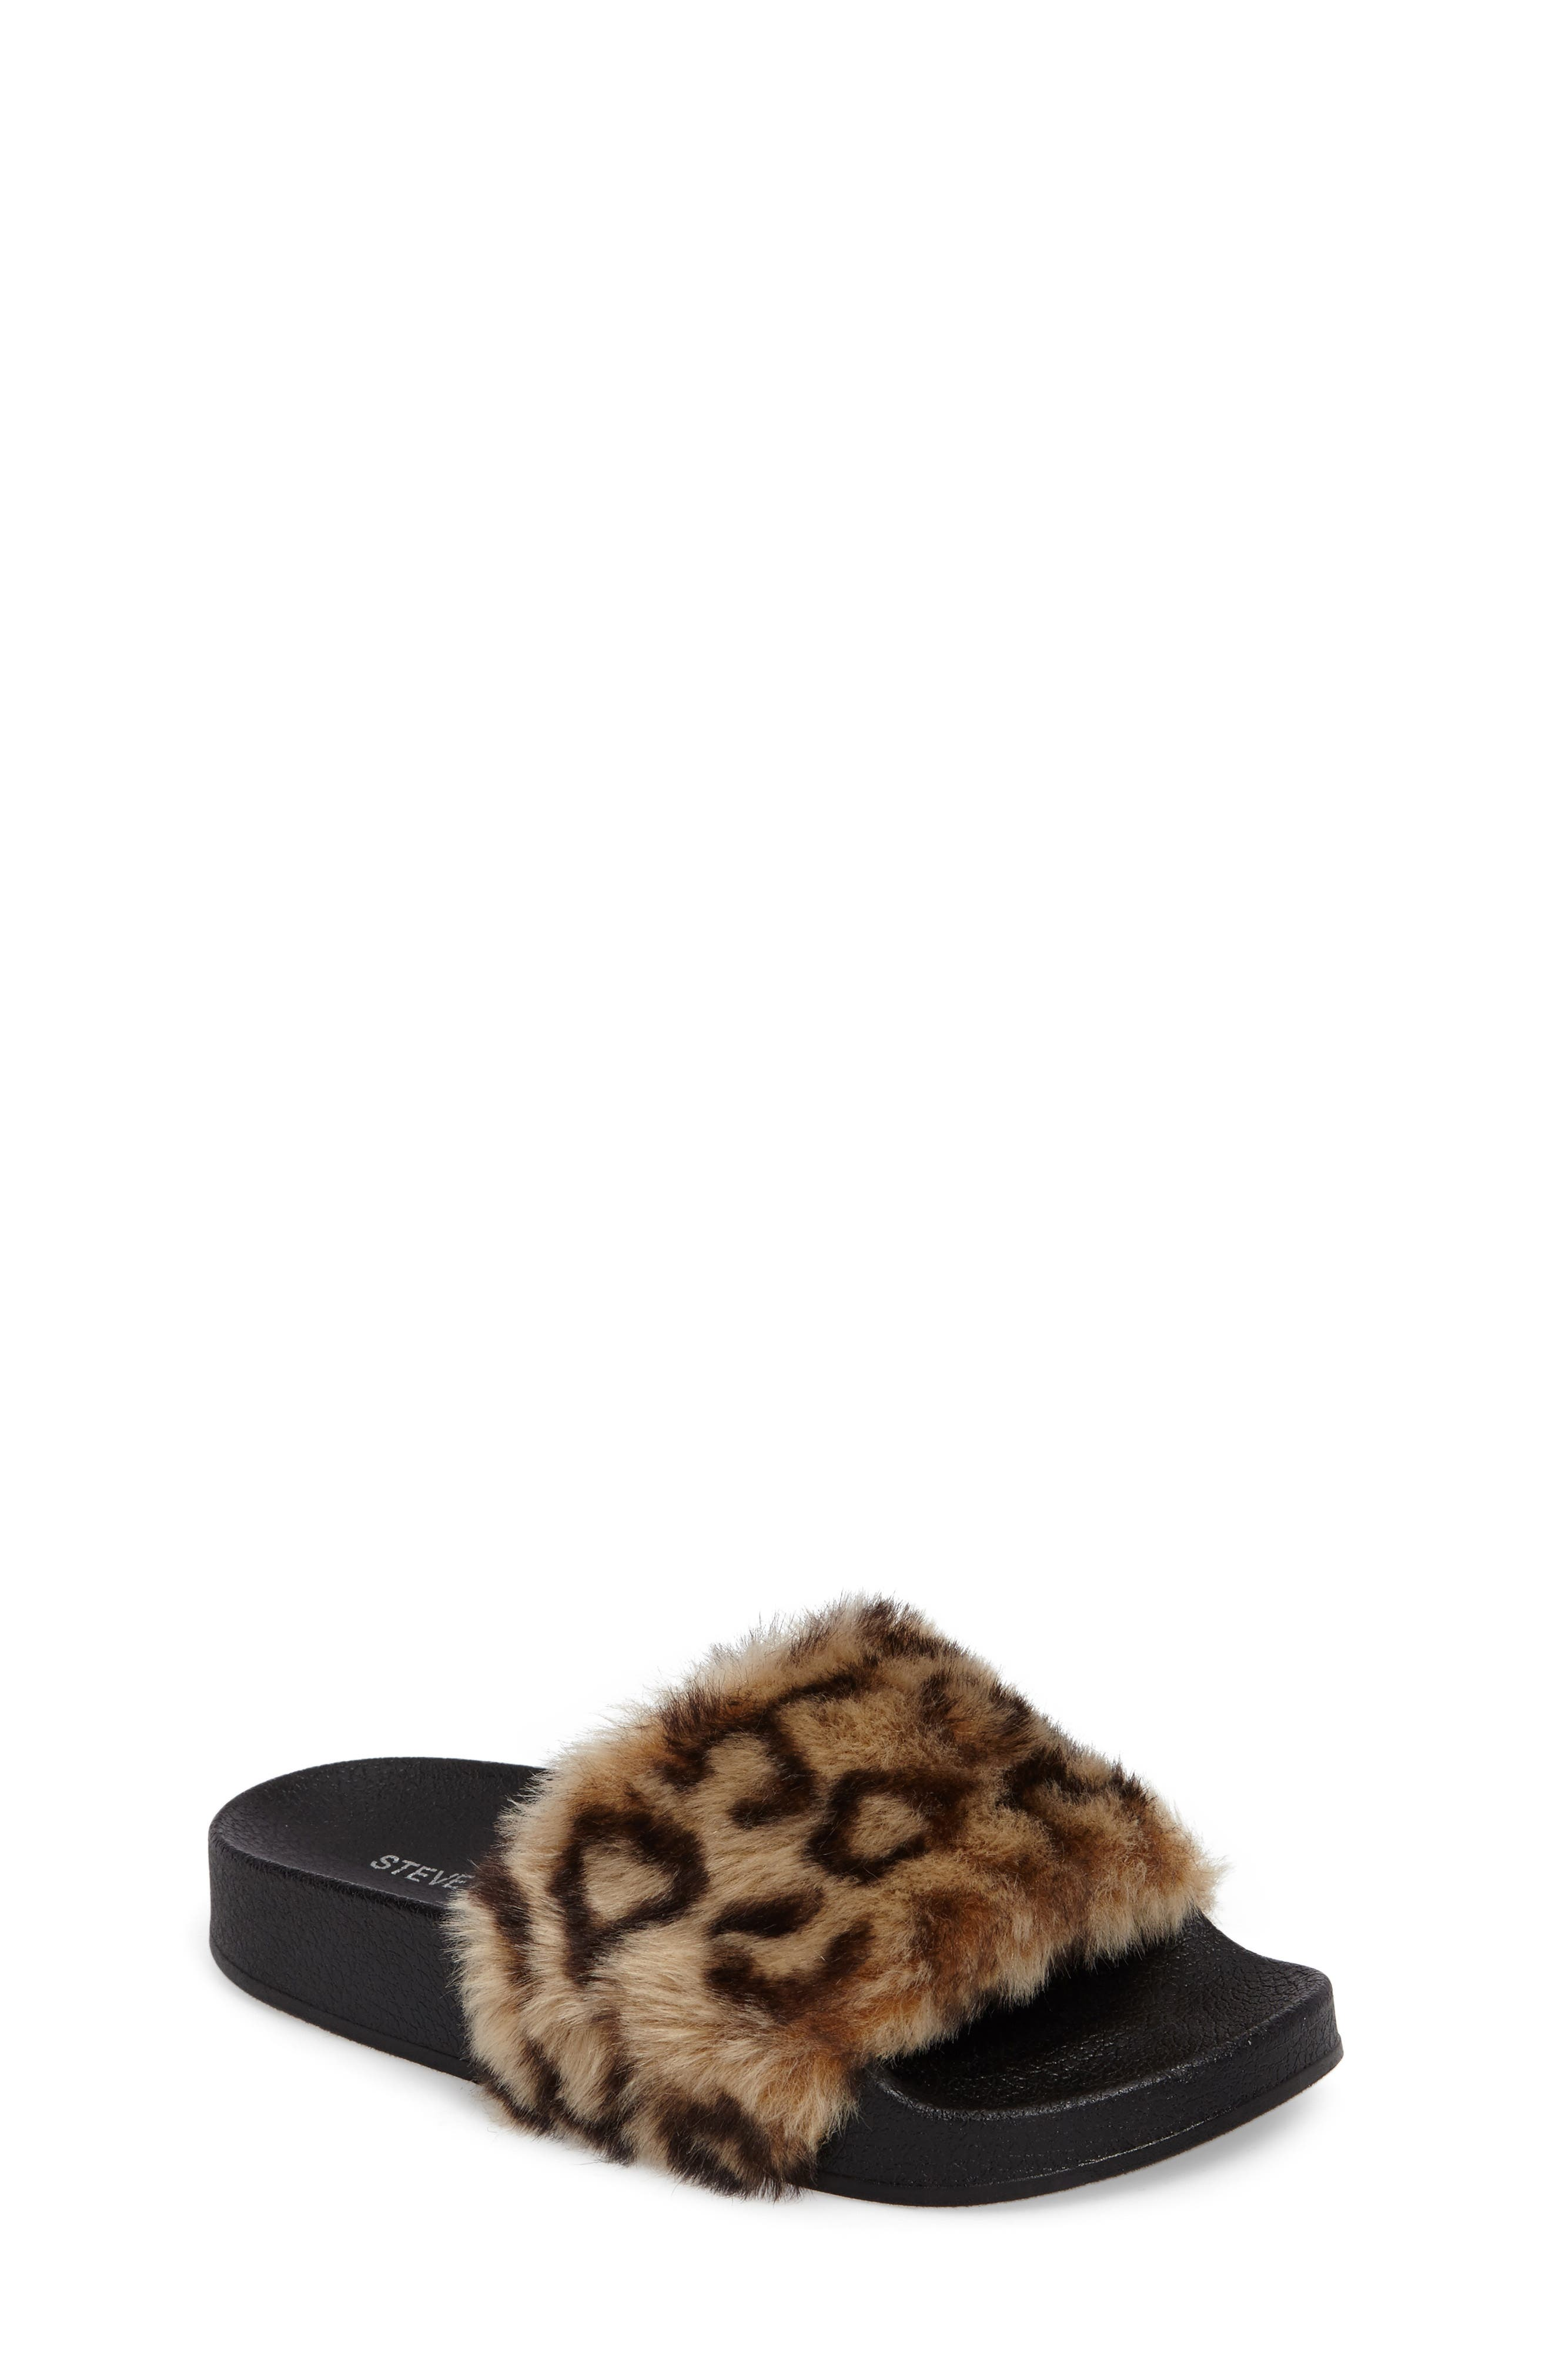 STEVE MADDEN Softey Slide